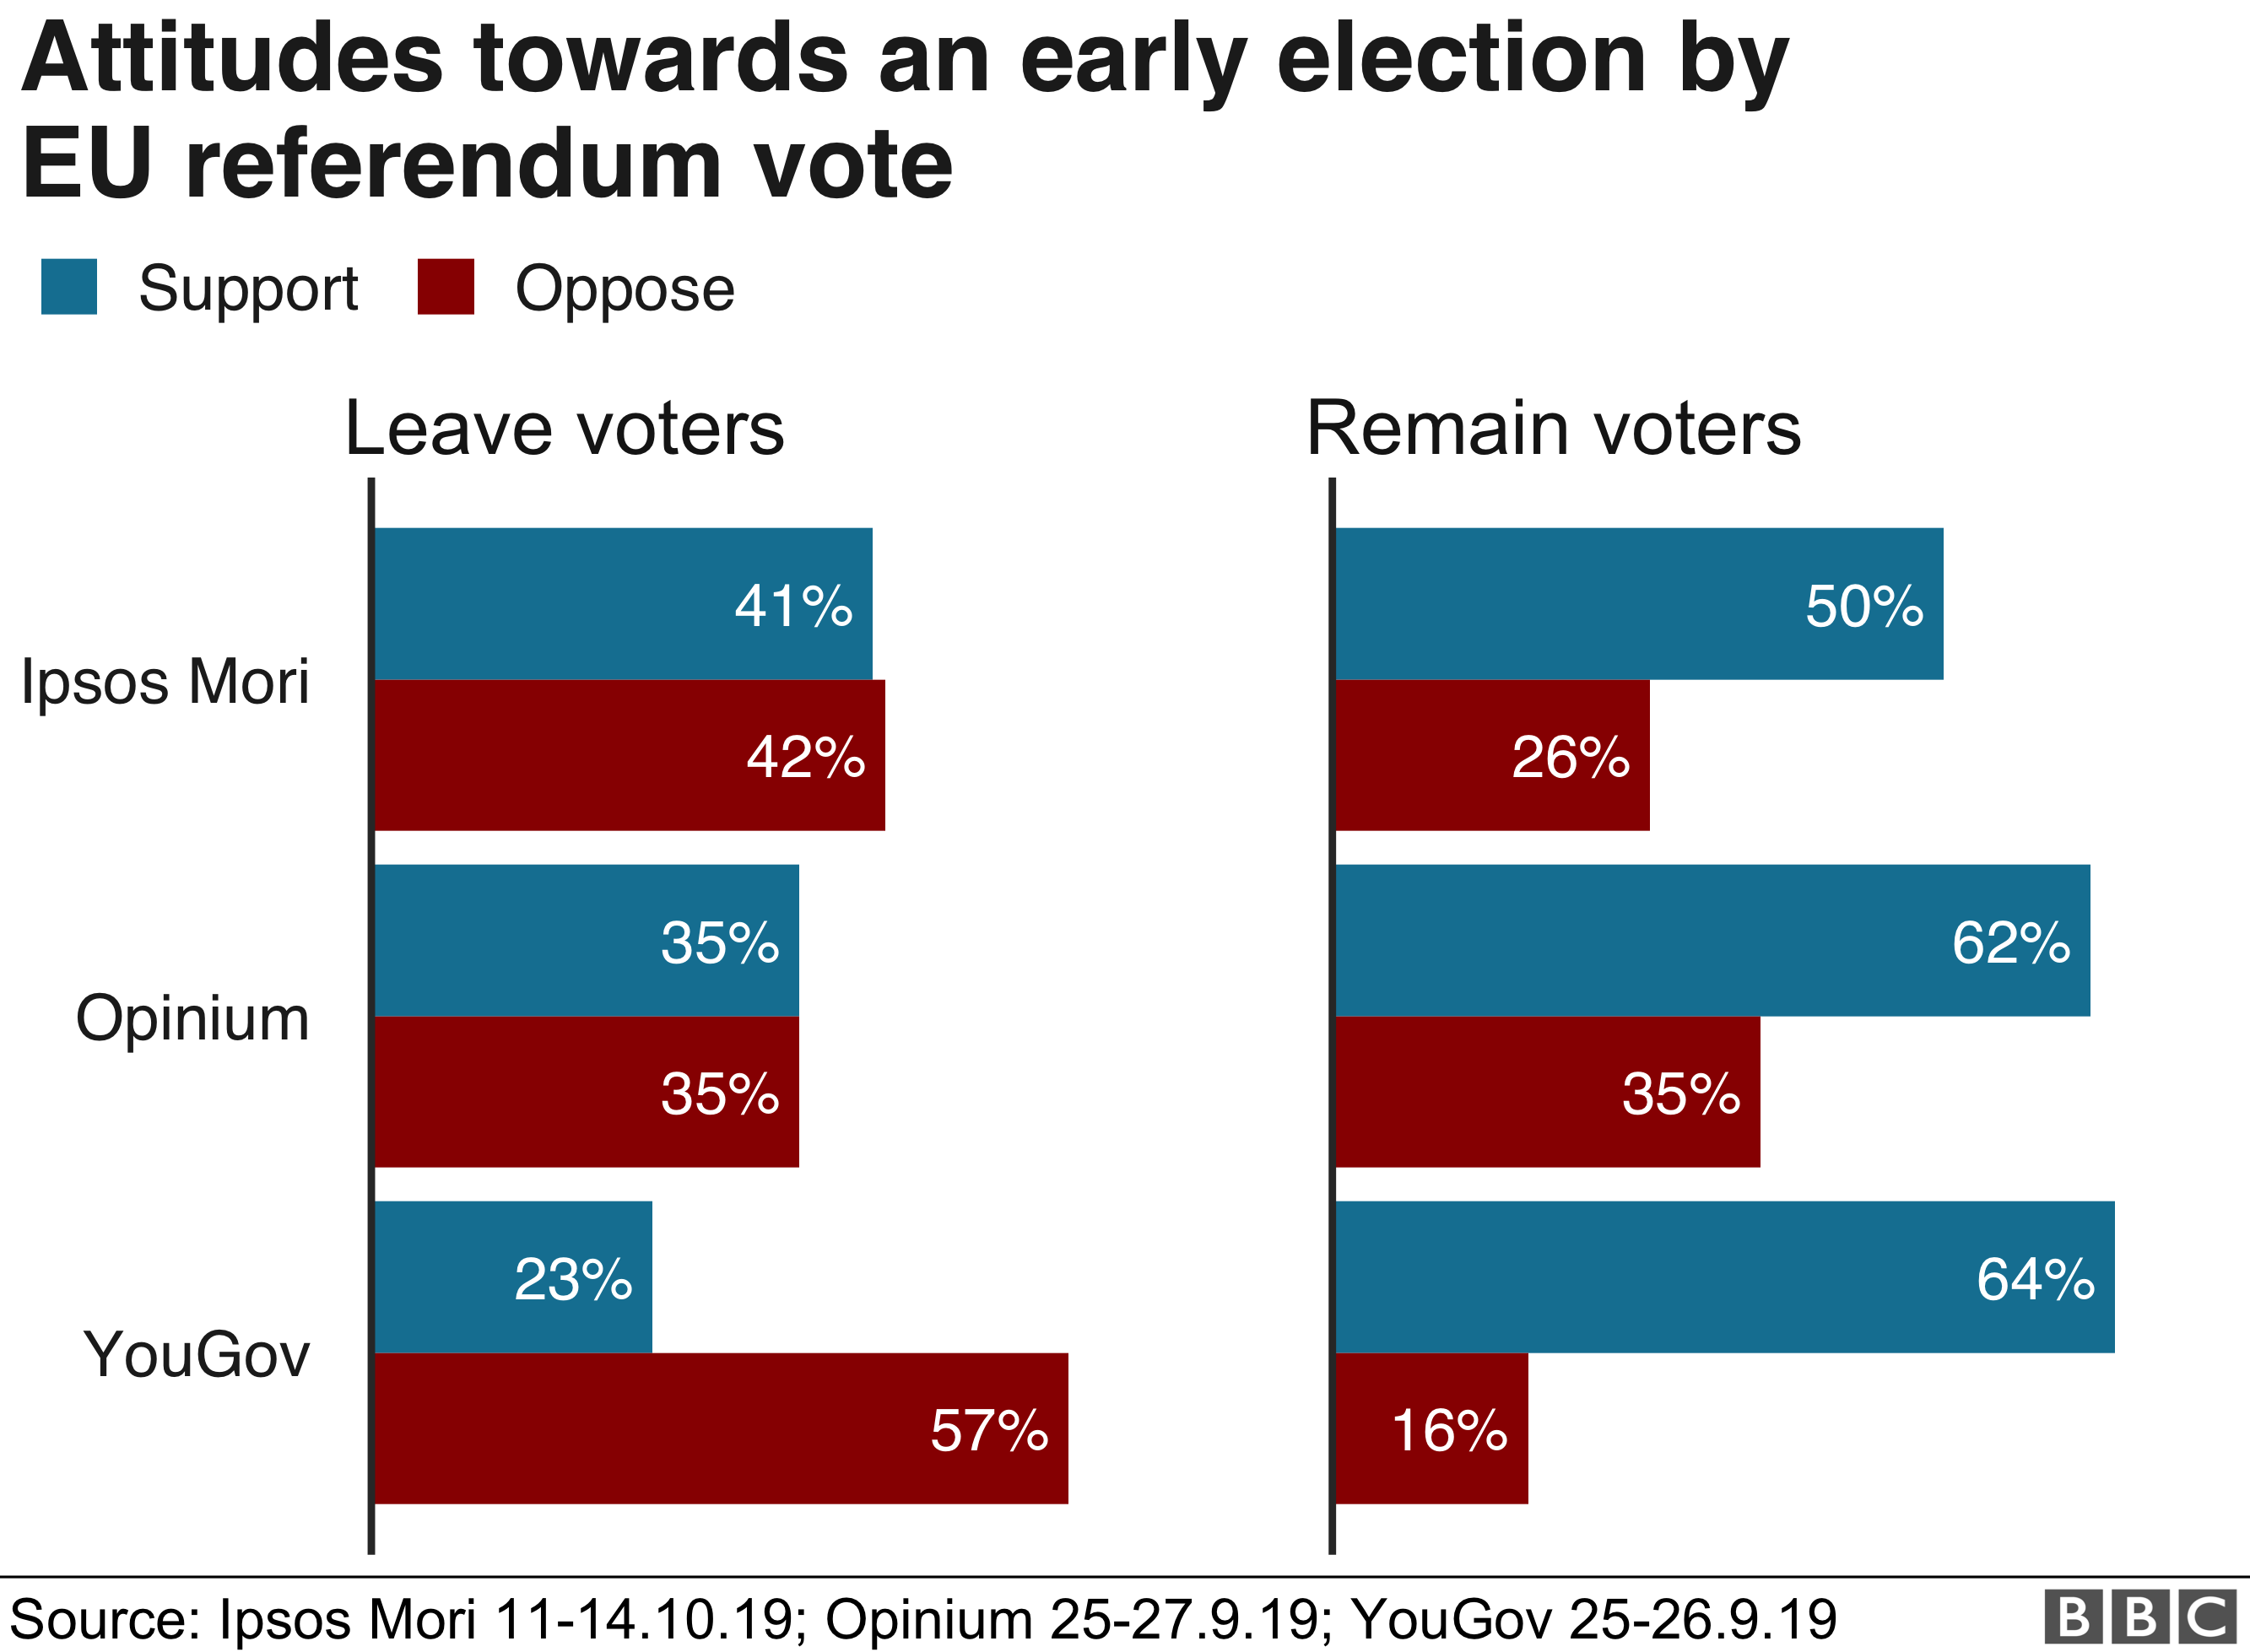 Chart on early election by EU ref vote